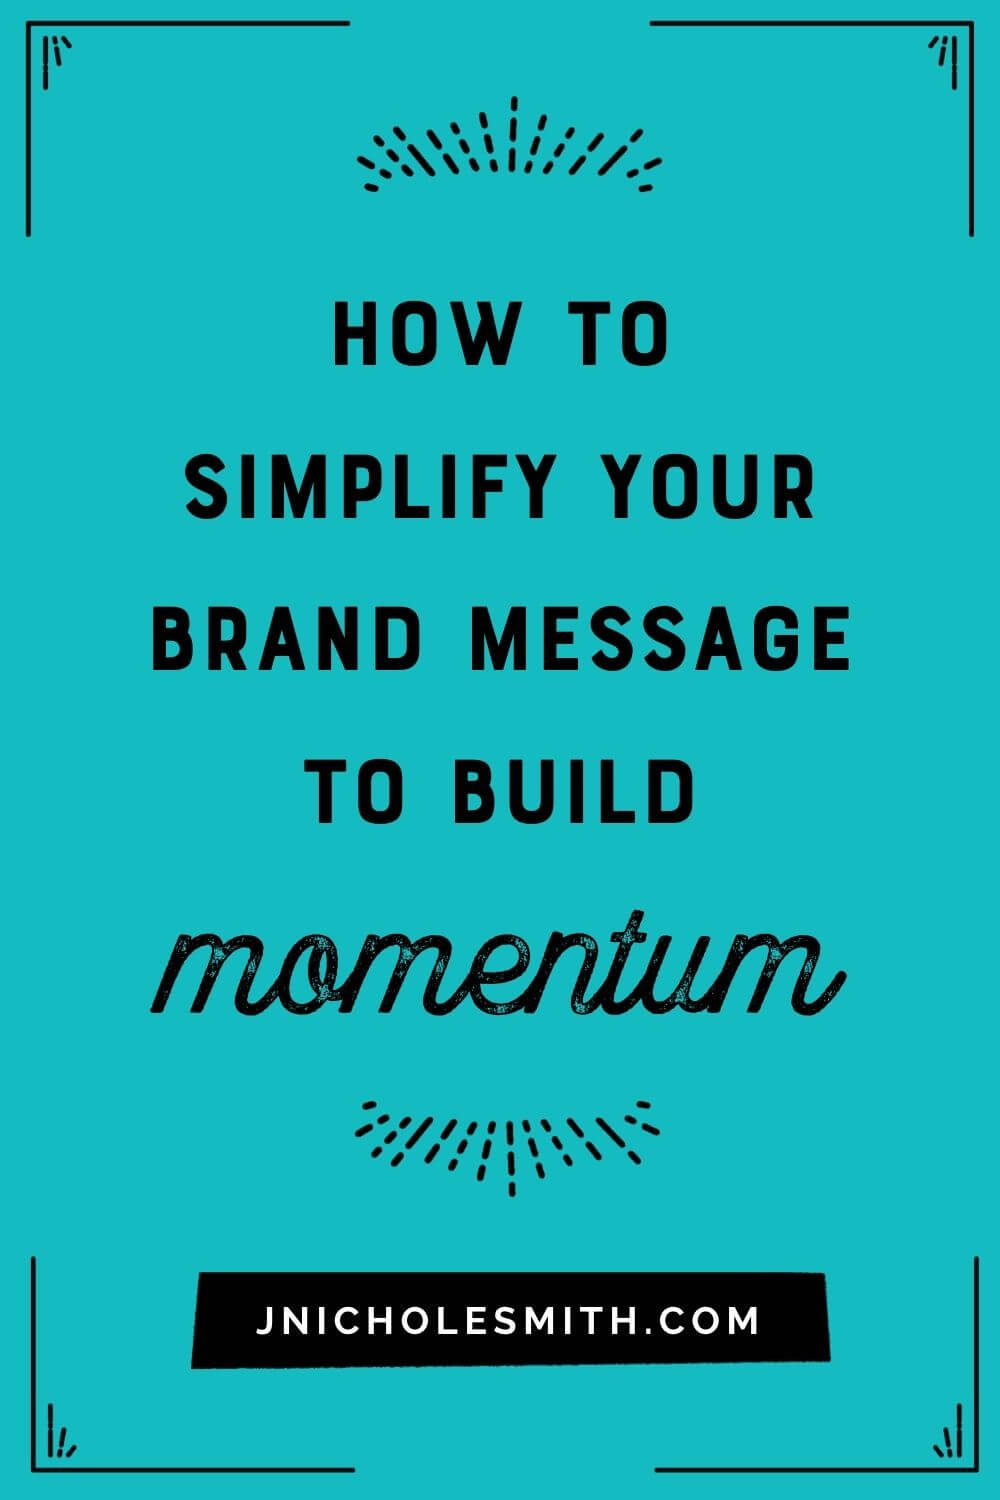 Building Message Momentum pin image